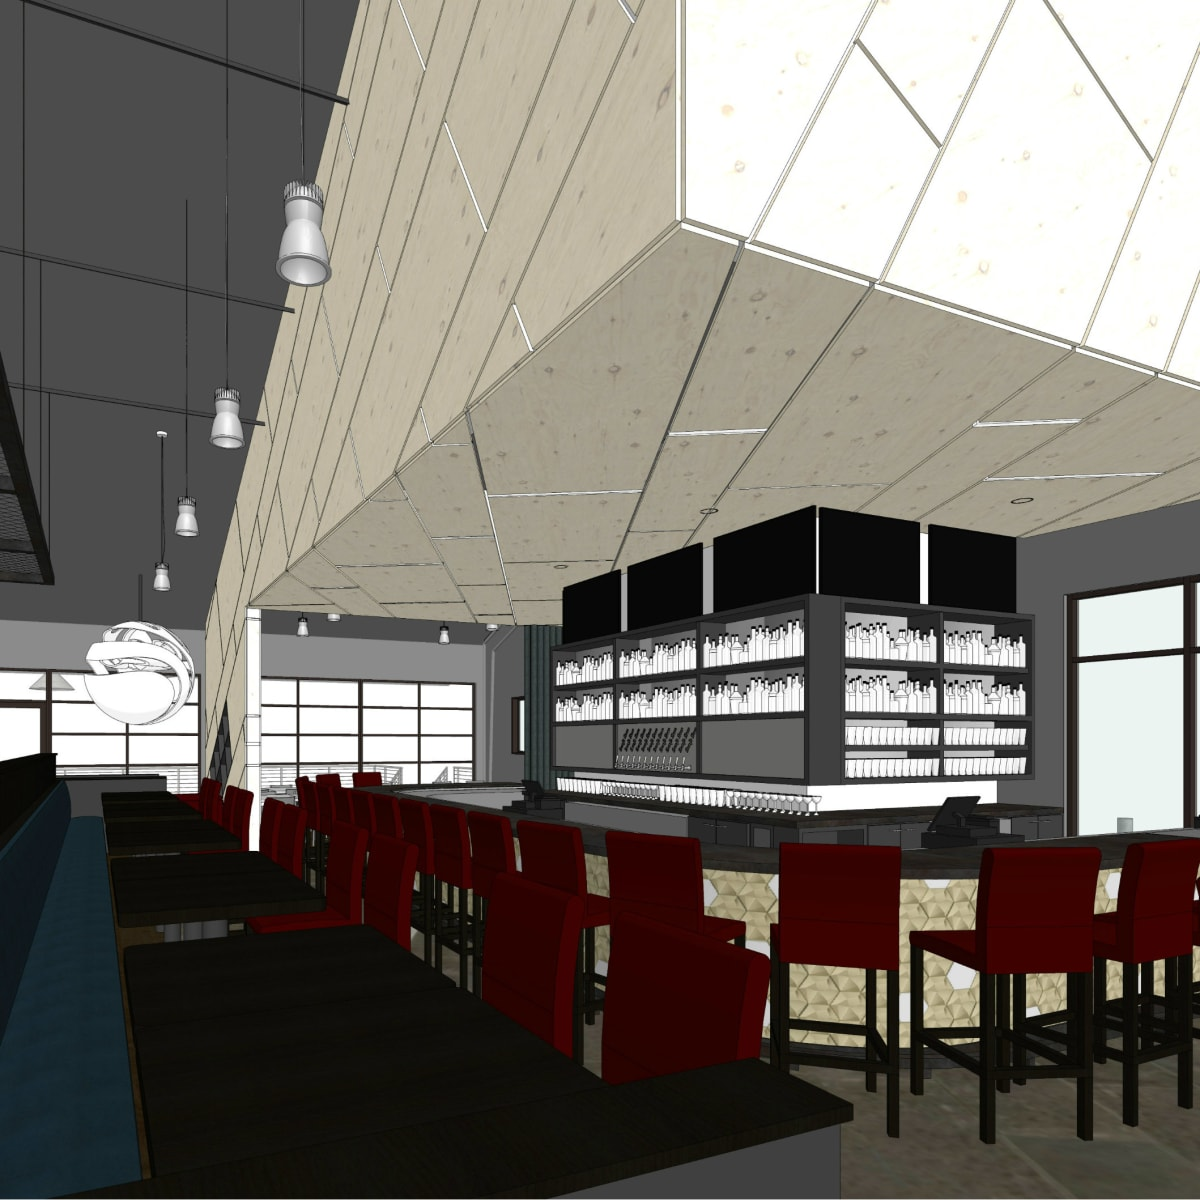 Rendering of Poitin interior bar area